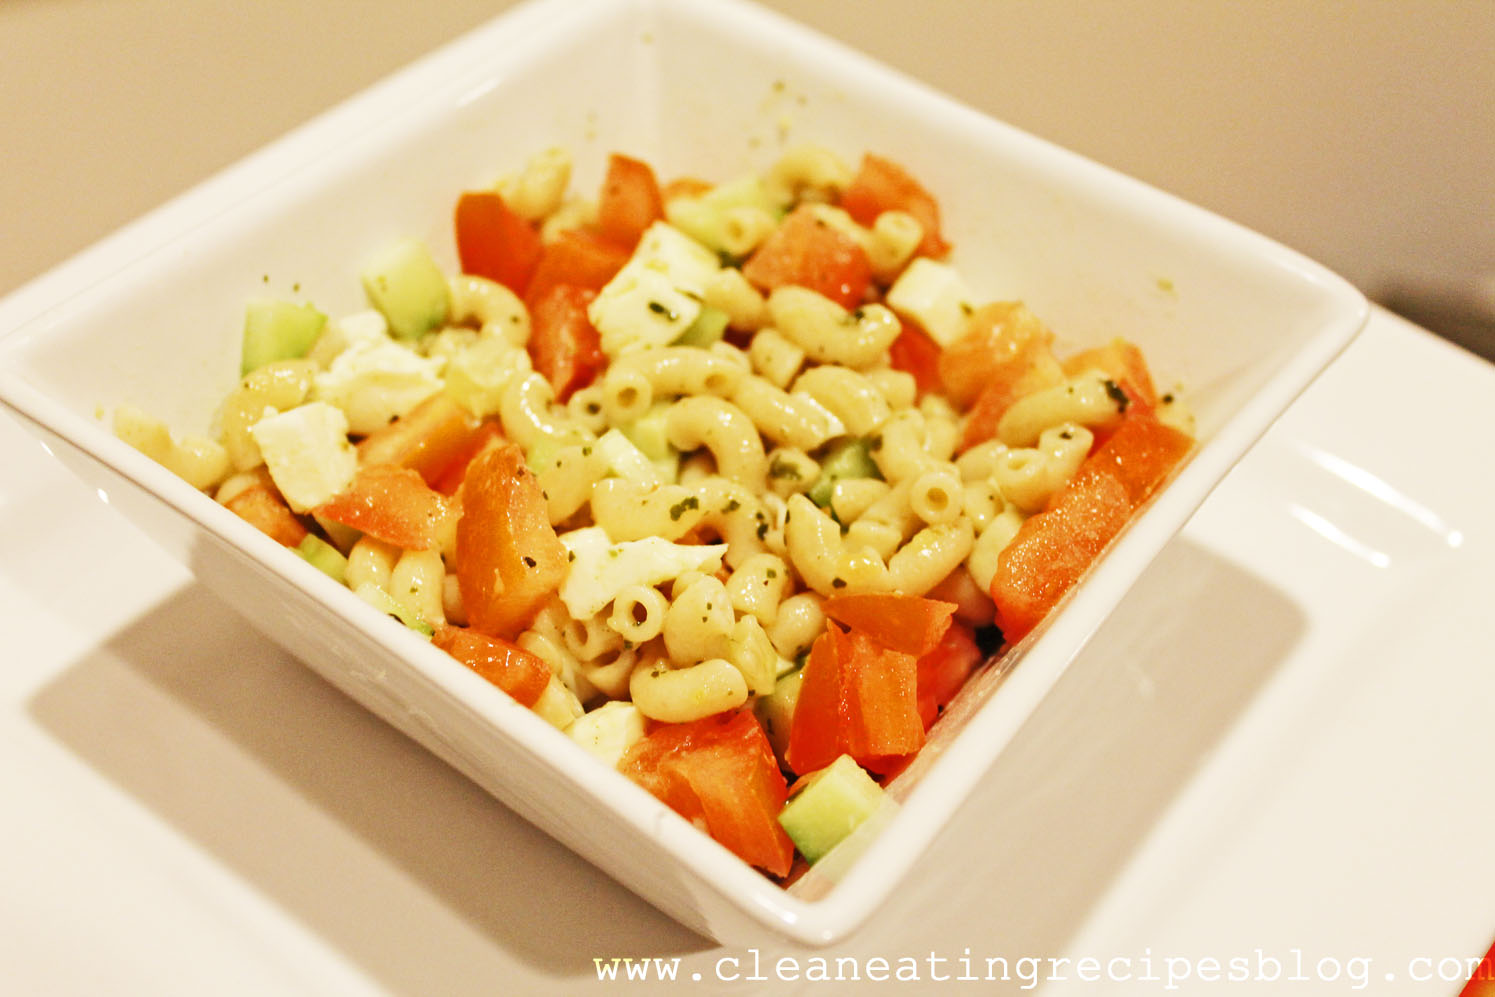 Clean Eating Recipe – Cucumber Tomato Pasta Salad